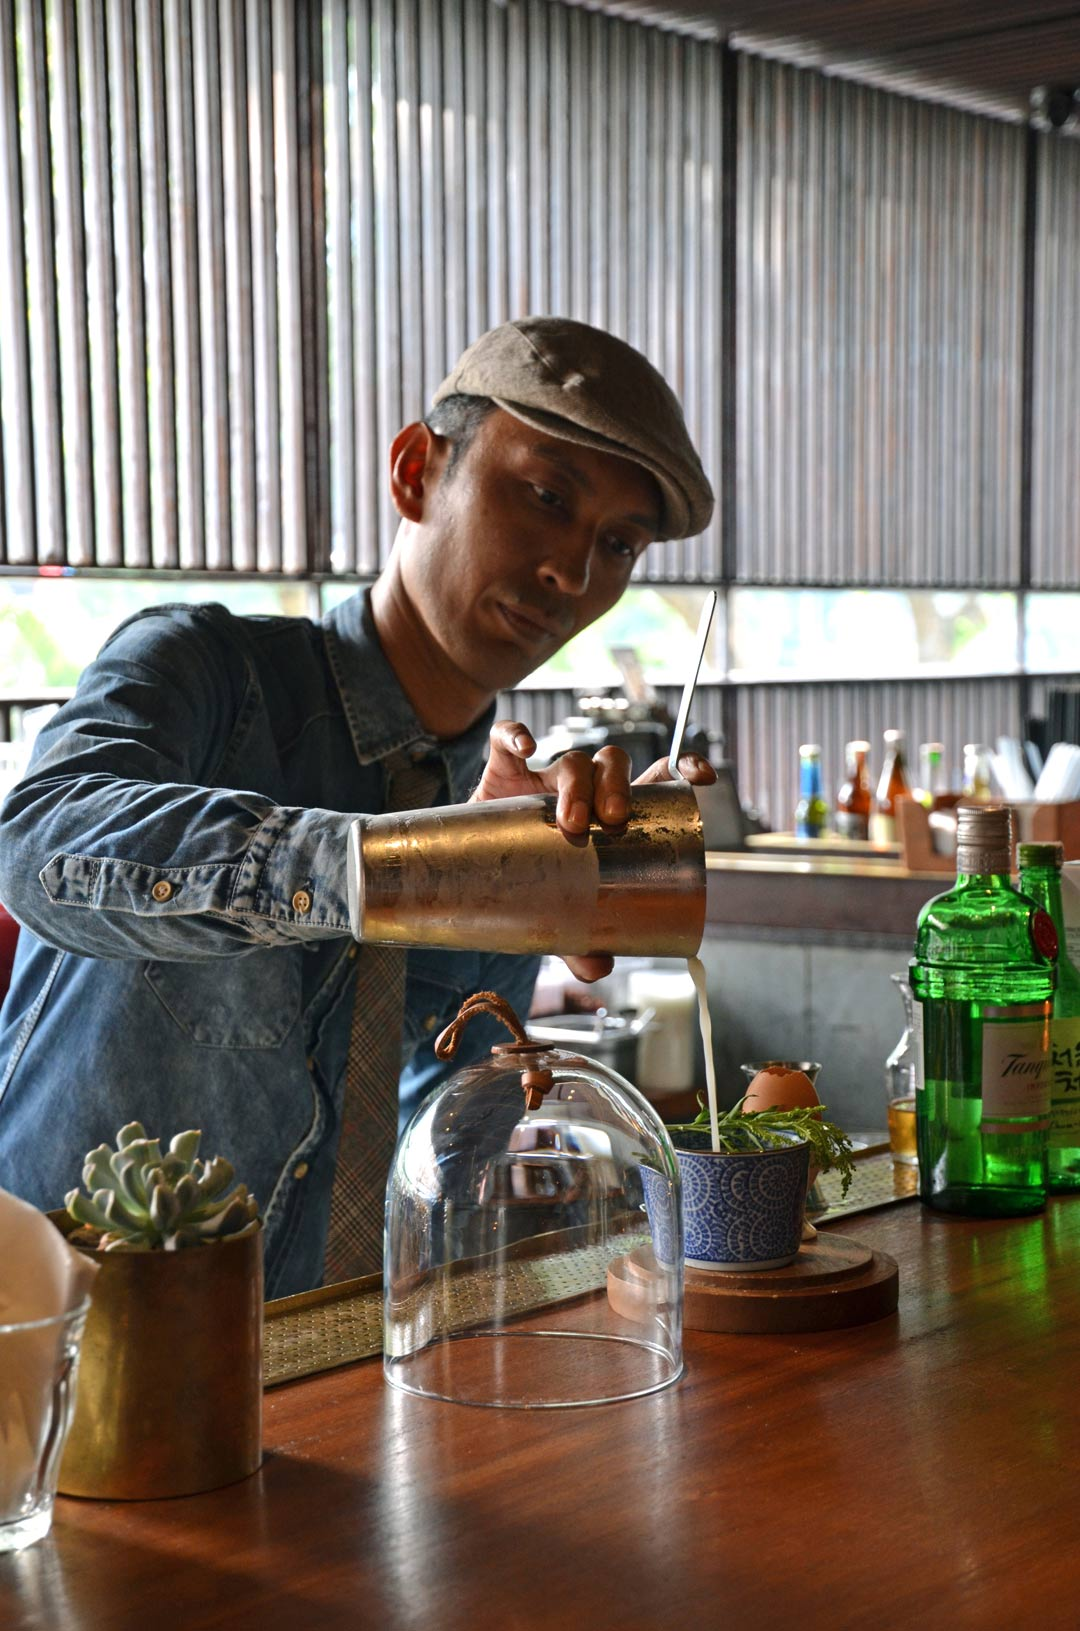 The Dutch's head mixologist preparing a Lemon Haze. (Photo: James Louie)